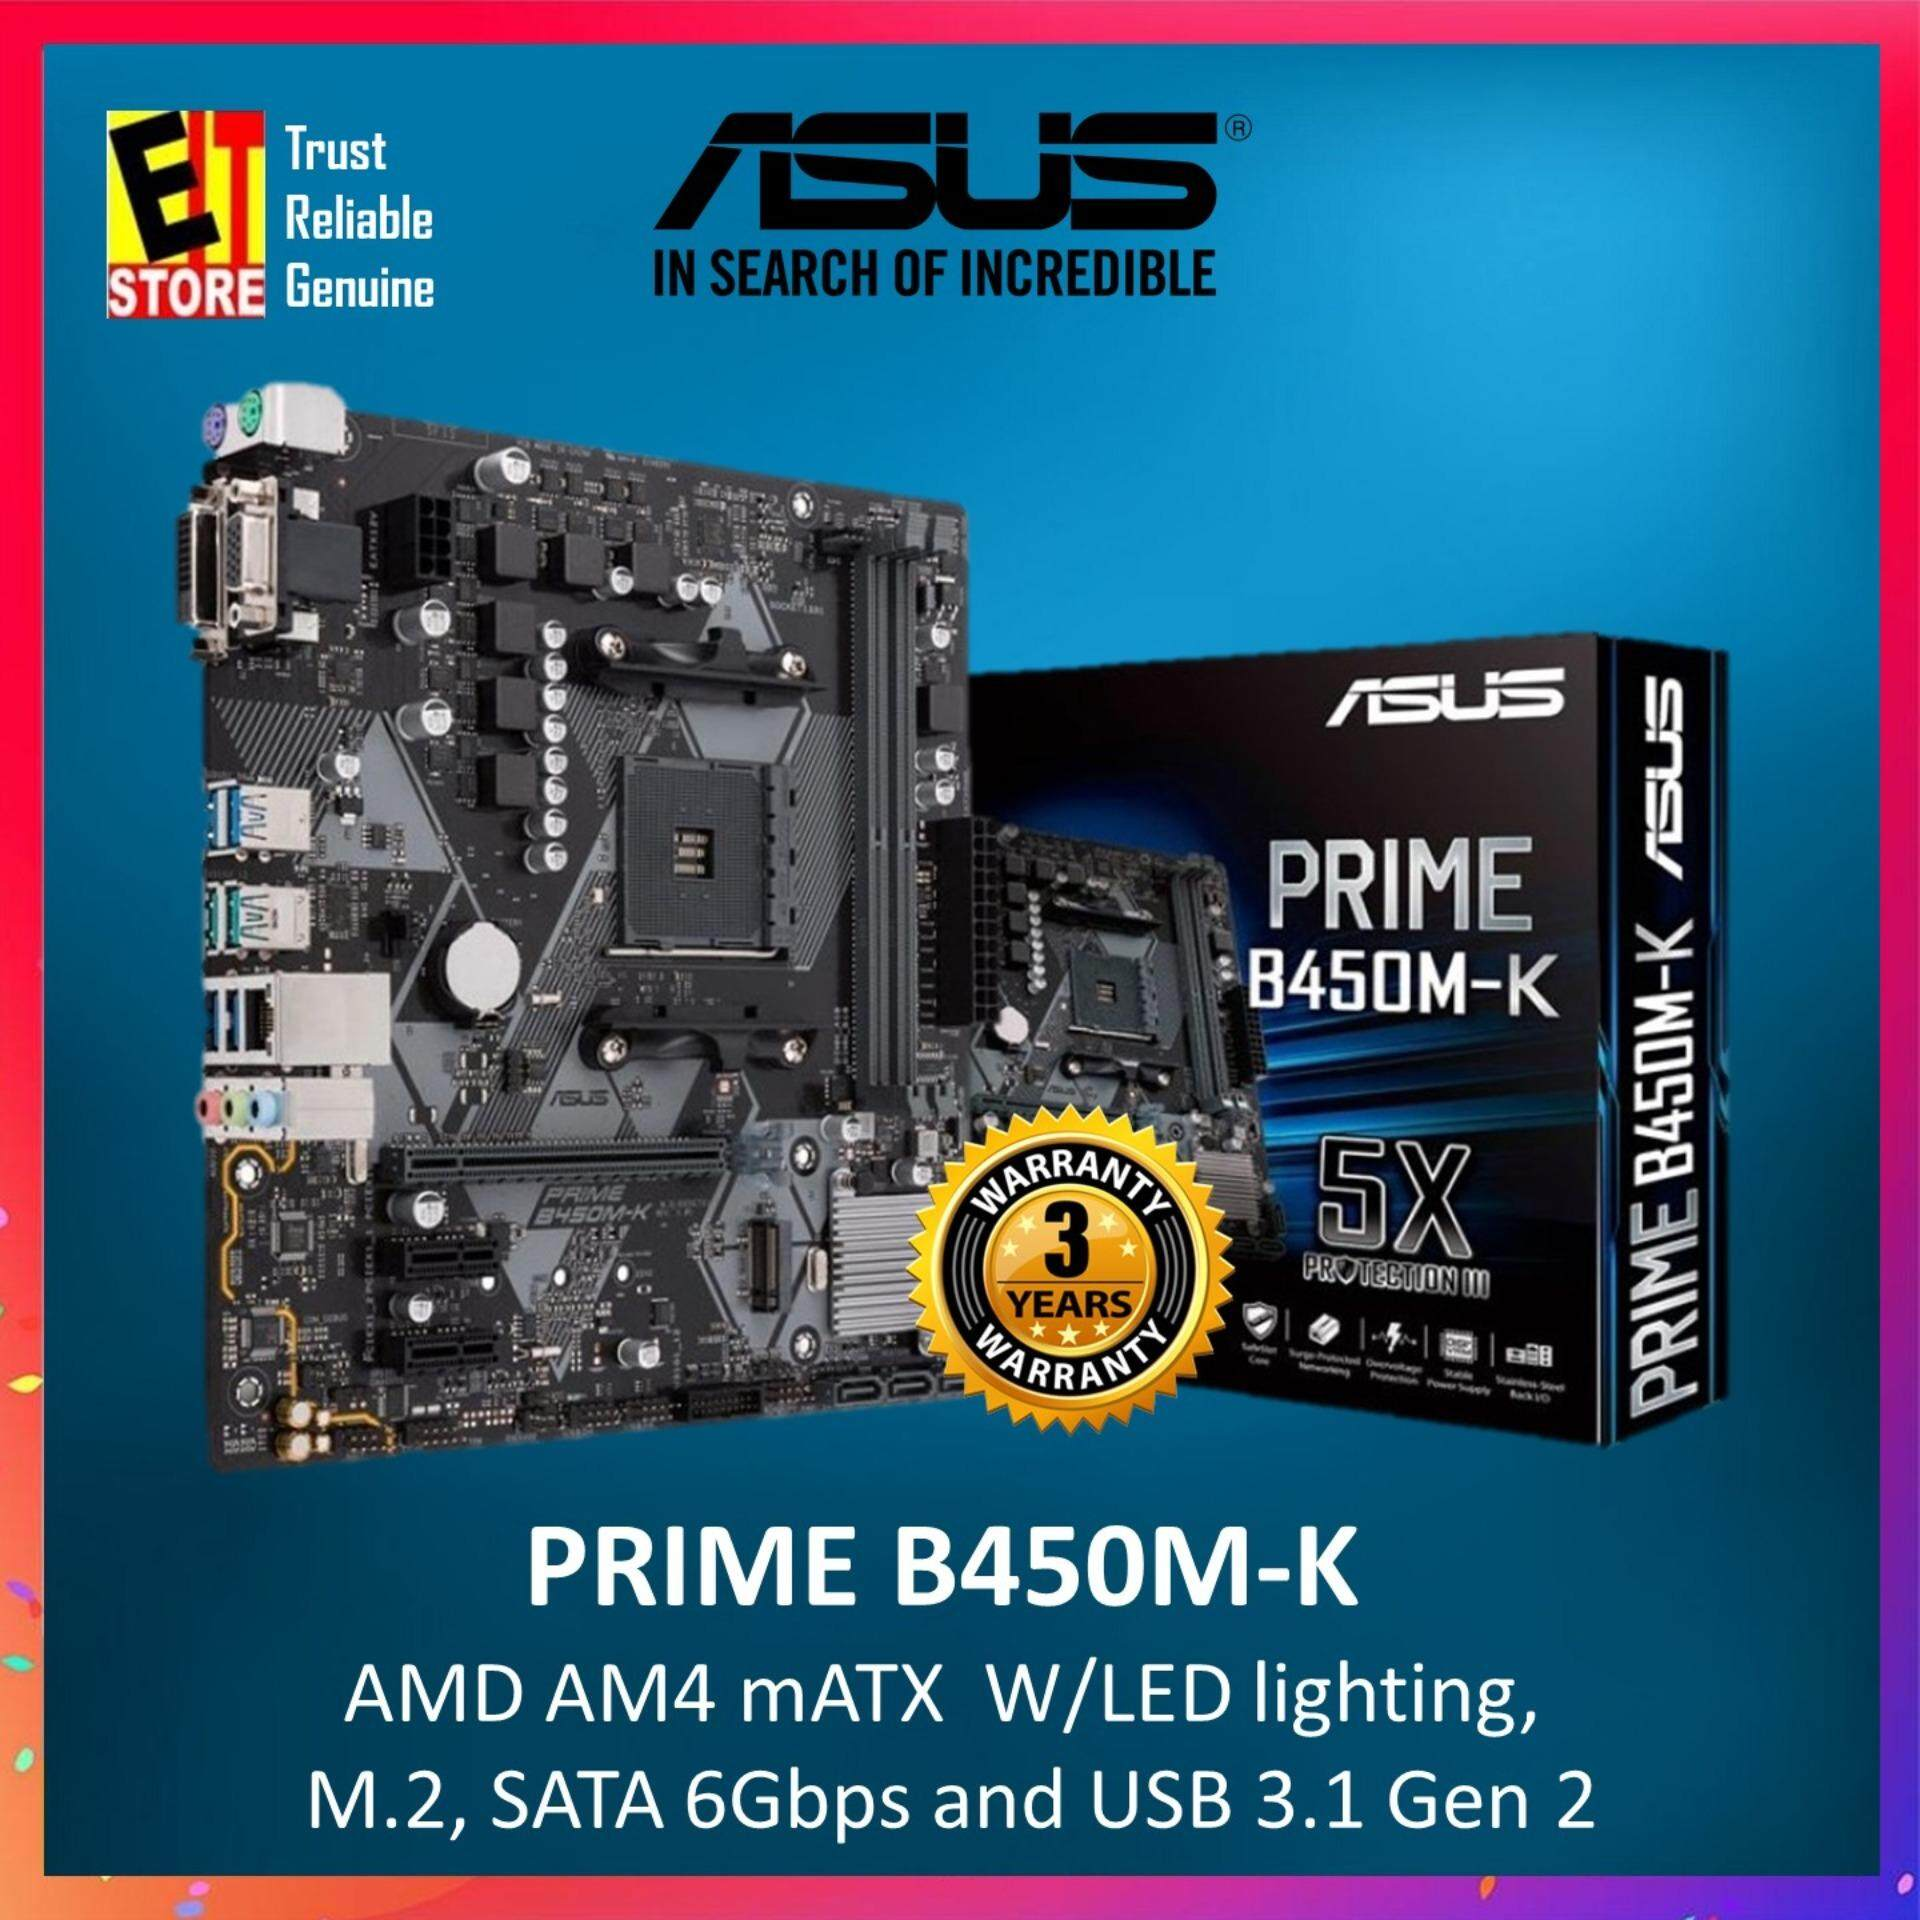 ASUS PRIME B450M-K AMD AM4 mATX motherboard withwith LED lighting, DDR4  3200MHz, M 2, SATA 6Gbps and USB 3 1 Gen 2